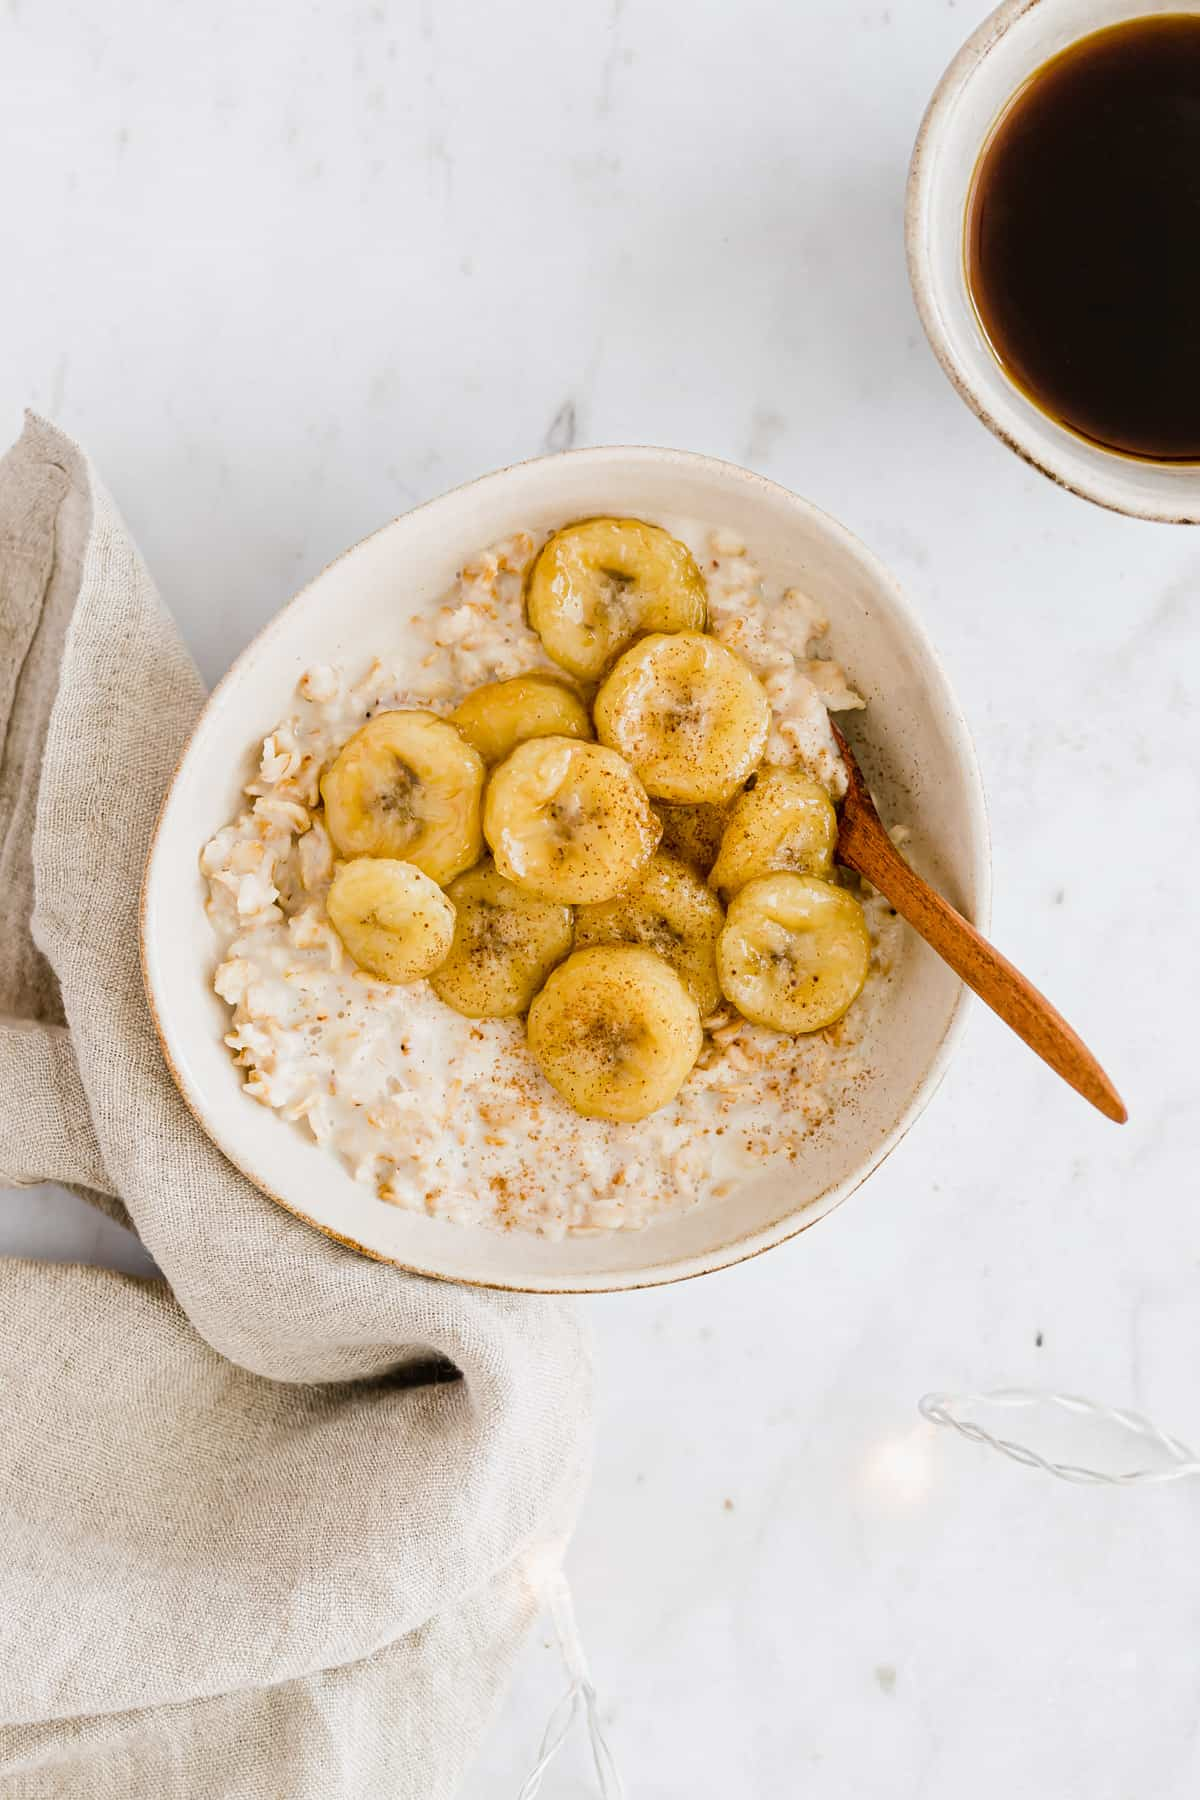 banana oatmeal next to a cup of coffee